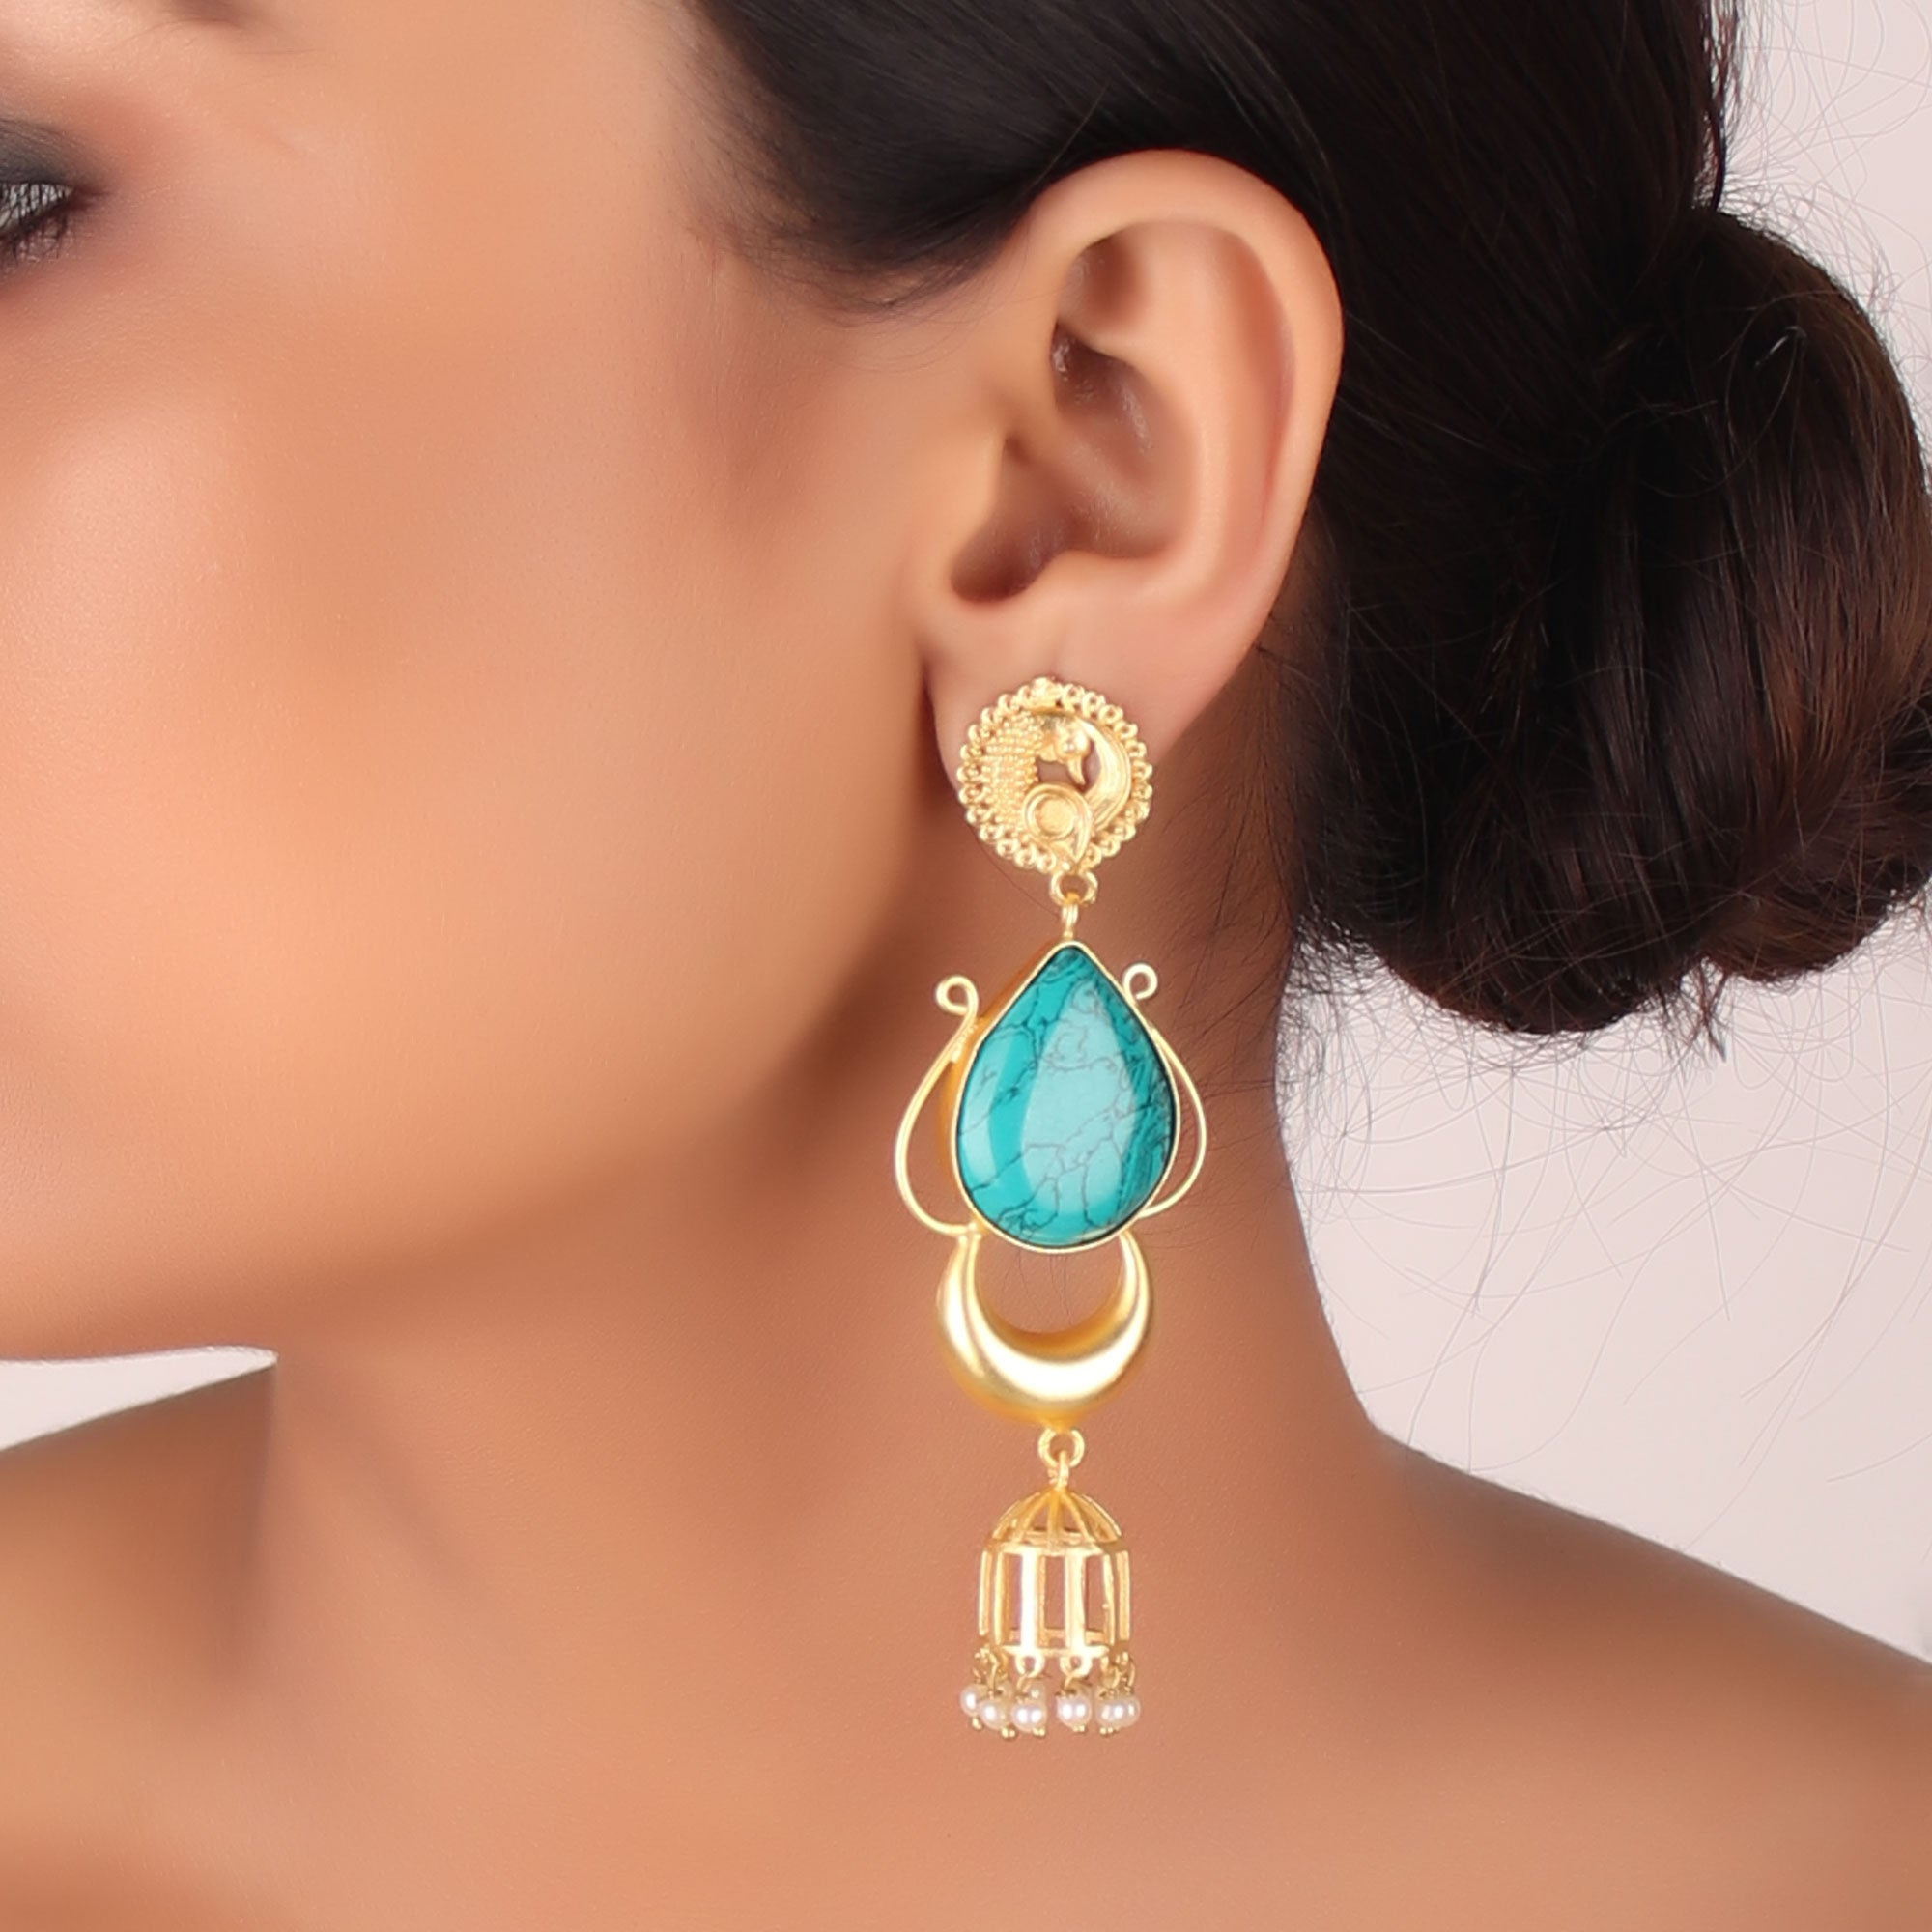 Earrings,The Delightful Glitter Jhoomar with Sea Green Stone - Cippele Multi Store